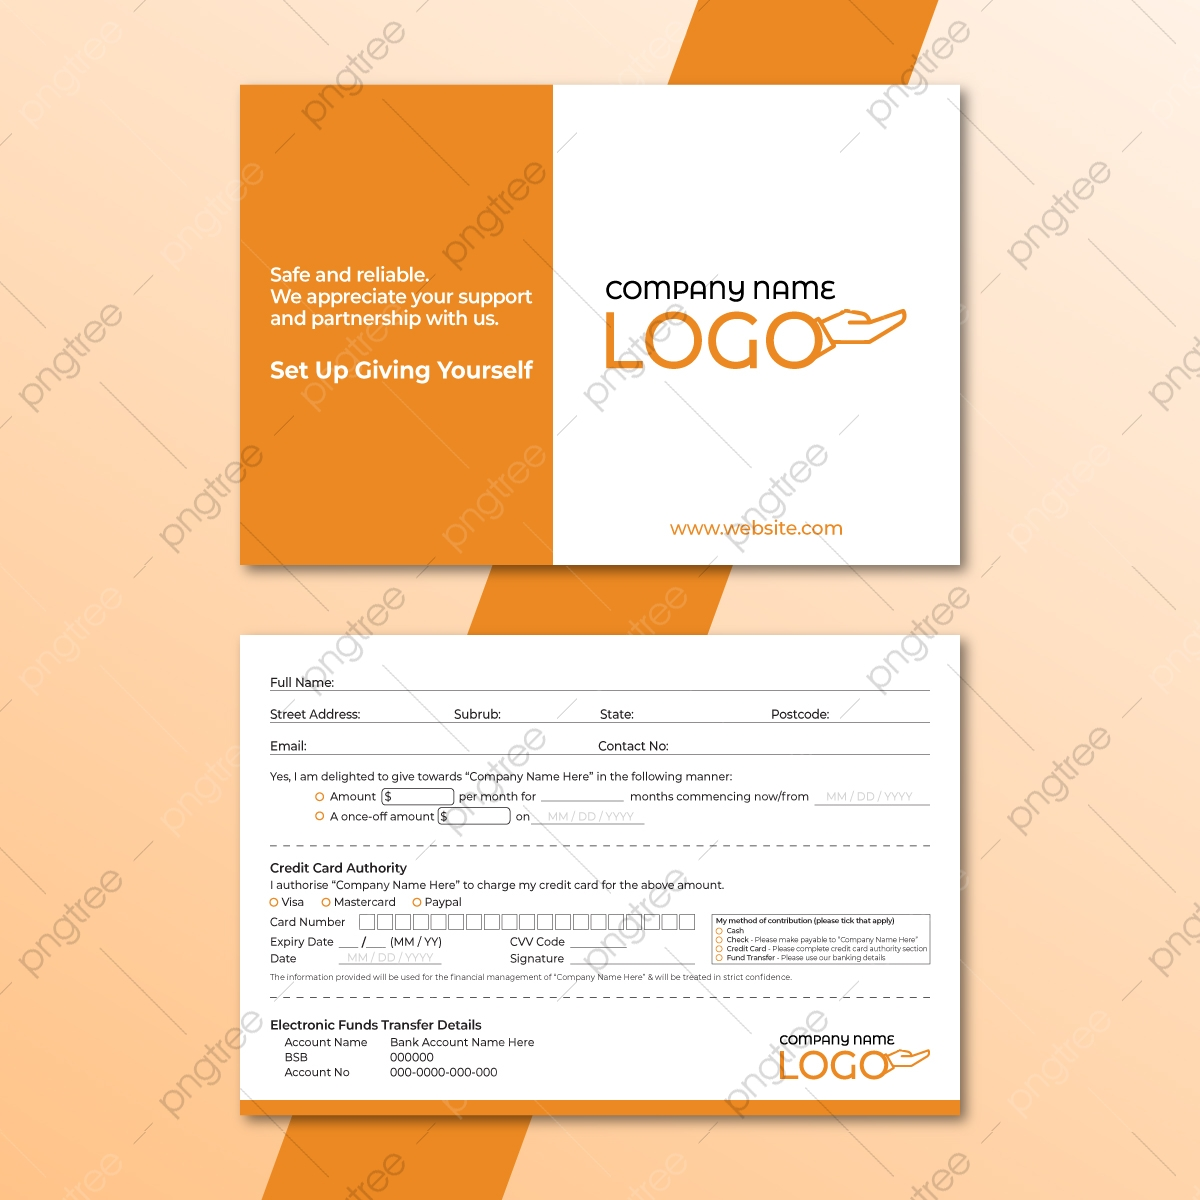 Corporate Donation Pledge Card For Fundraising Template Download With Regard To Fundraising Pledge Card Template